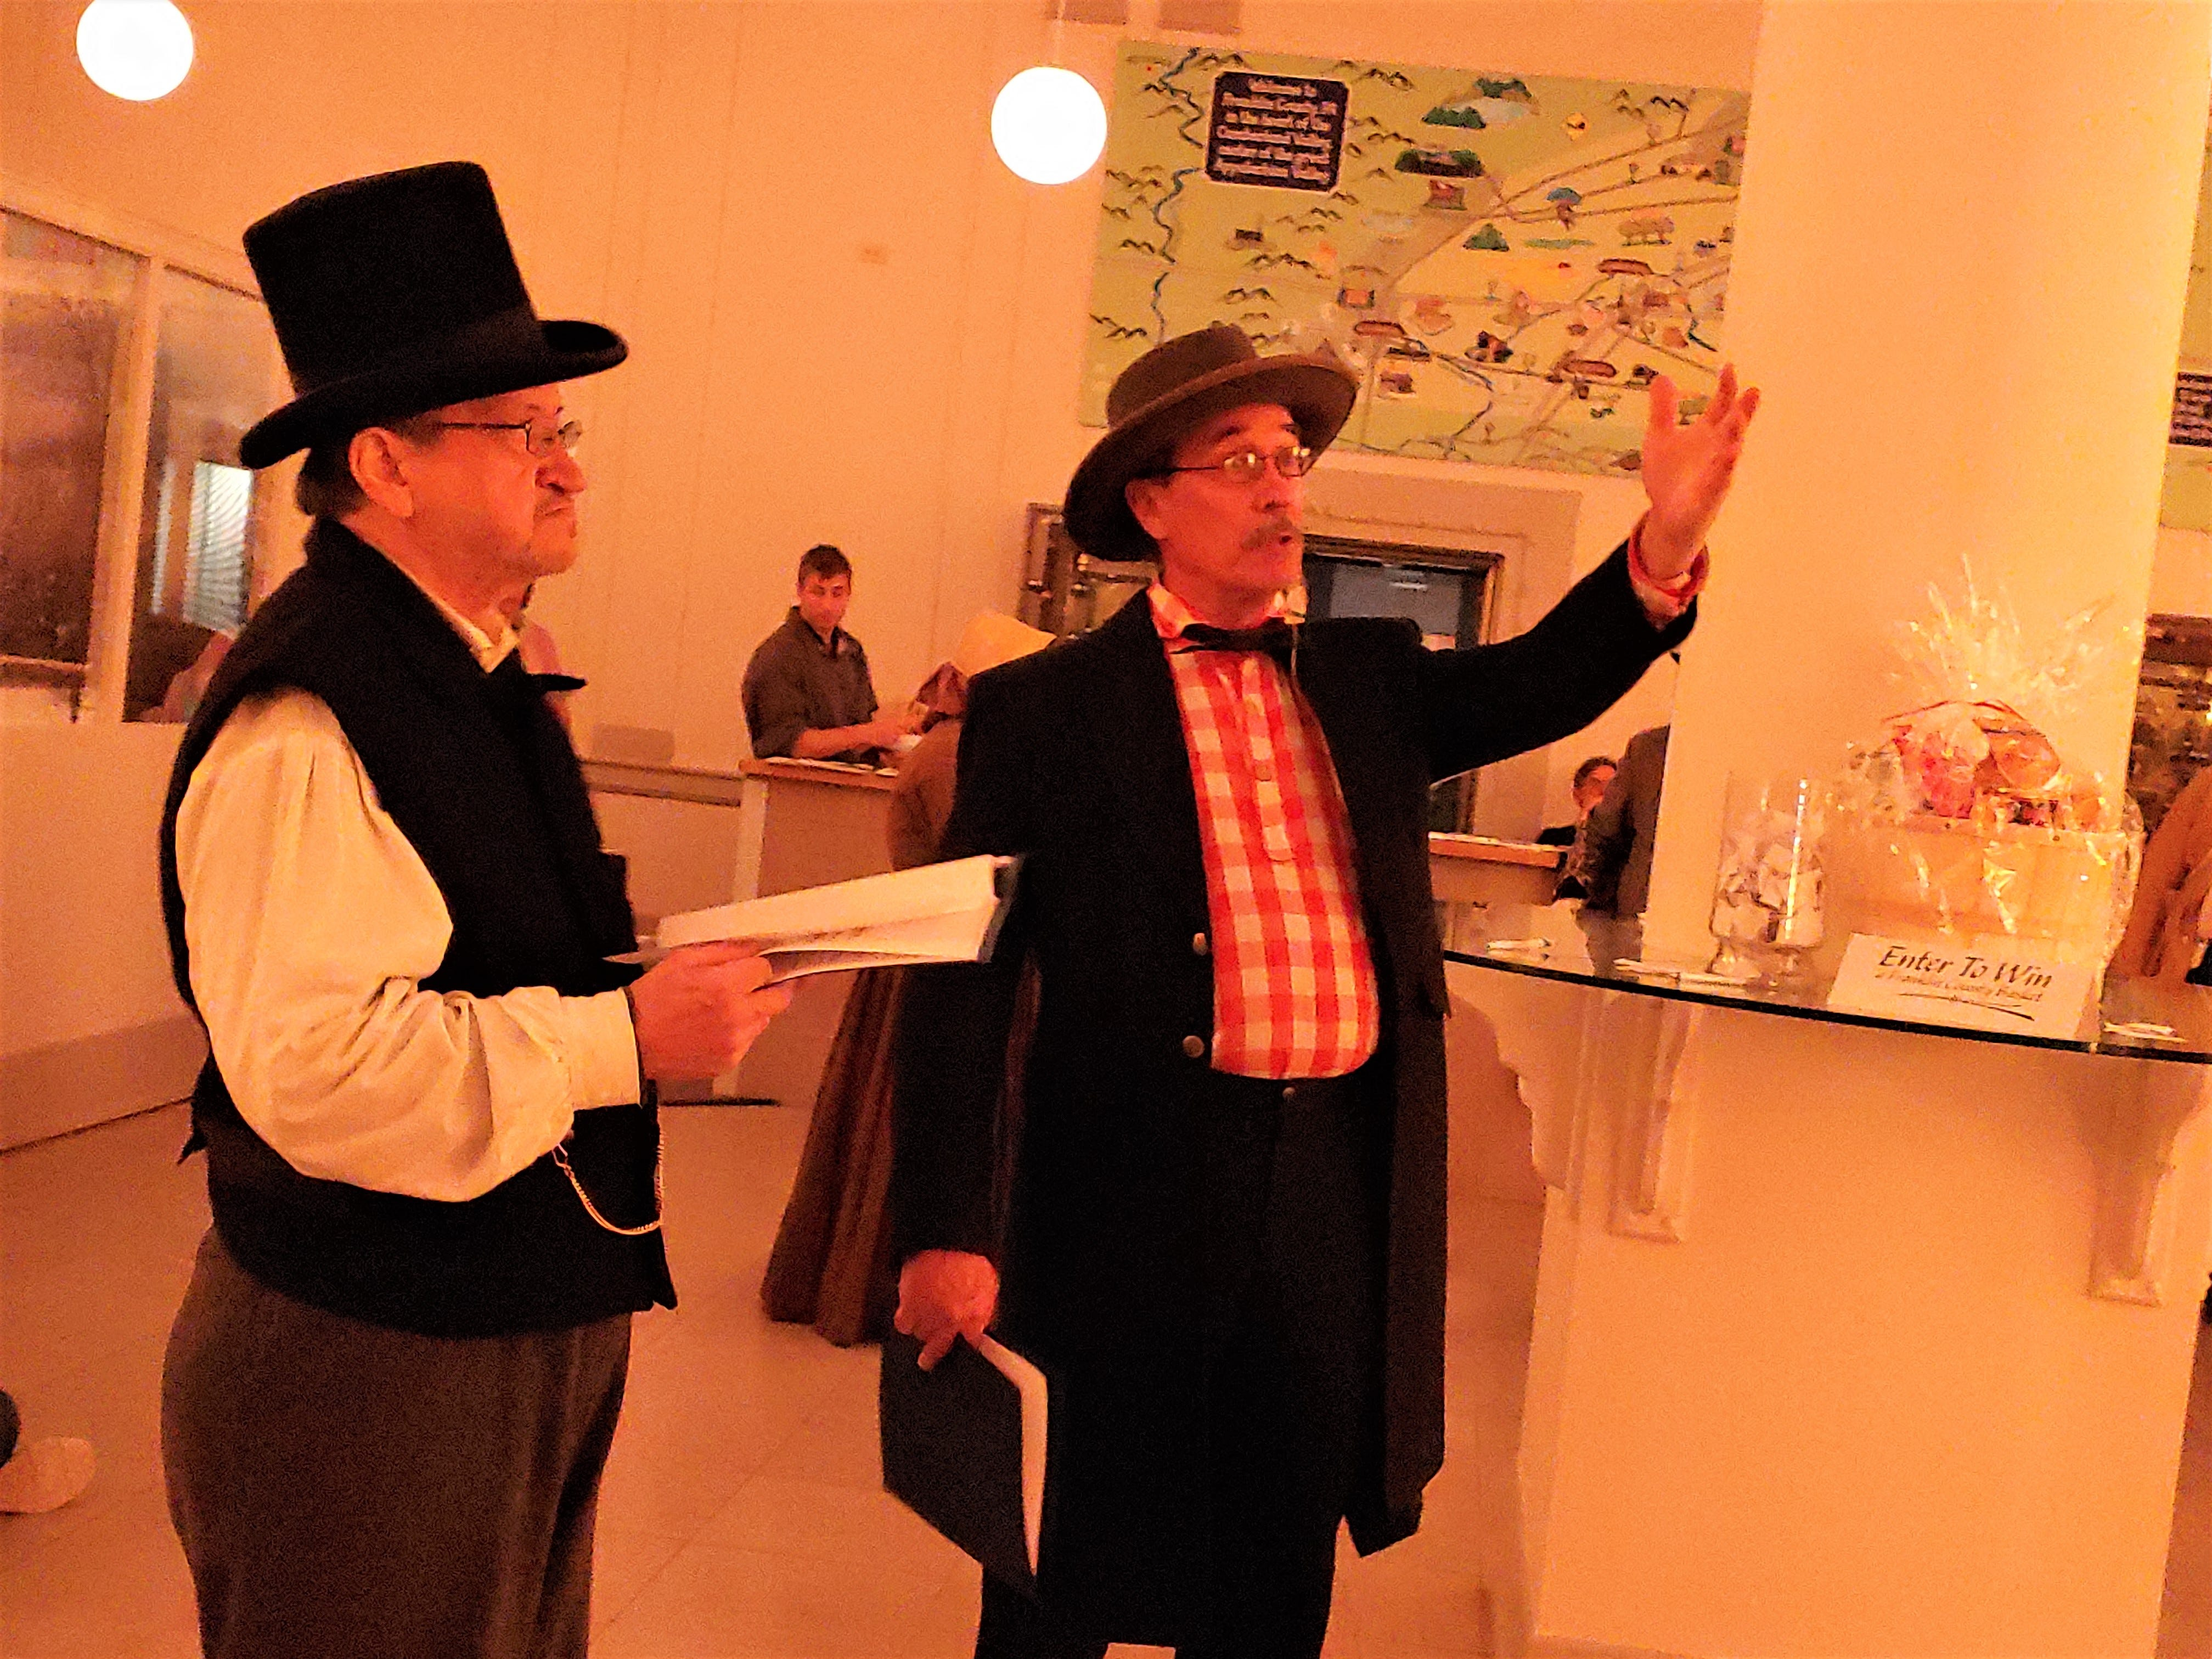 """John Shindledecker, playing Mr. Sharpe, and Charles Rittenhouse, playing Jacob Hoke, talk about Chambersburg, which will soon be burned to the ground by the Confederates. Franklin County Visitors Bureau presented """"300 Year's of America's History,"""" including the 1864 Ransoming, Burning and Rebirth of Chambersburg, during the grand opening of the 11/30 Welcome Center on Saturday, Nov. 24, 2018. Featured were Andy Newman, Bryton Zook, Carlos Lee, Charles Rittenhouse, David Moore, Dawn Snider, Emily Martin, John Shindledecker, Nancy Godfrey and Susan Wall."""